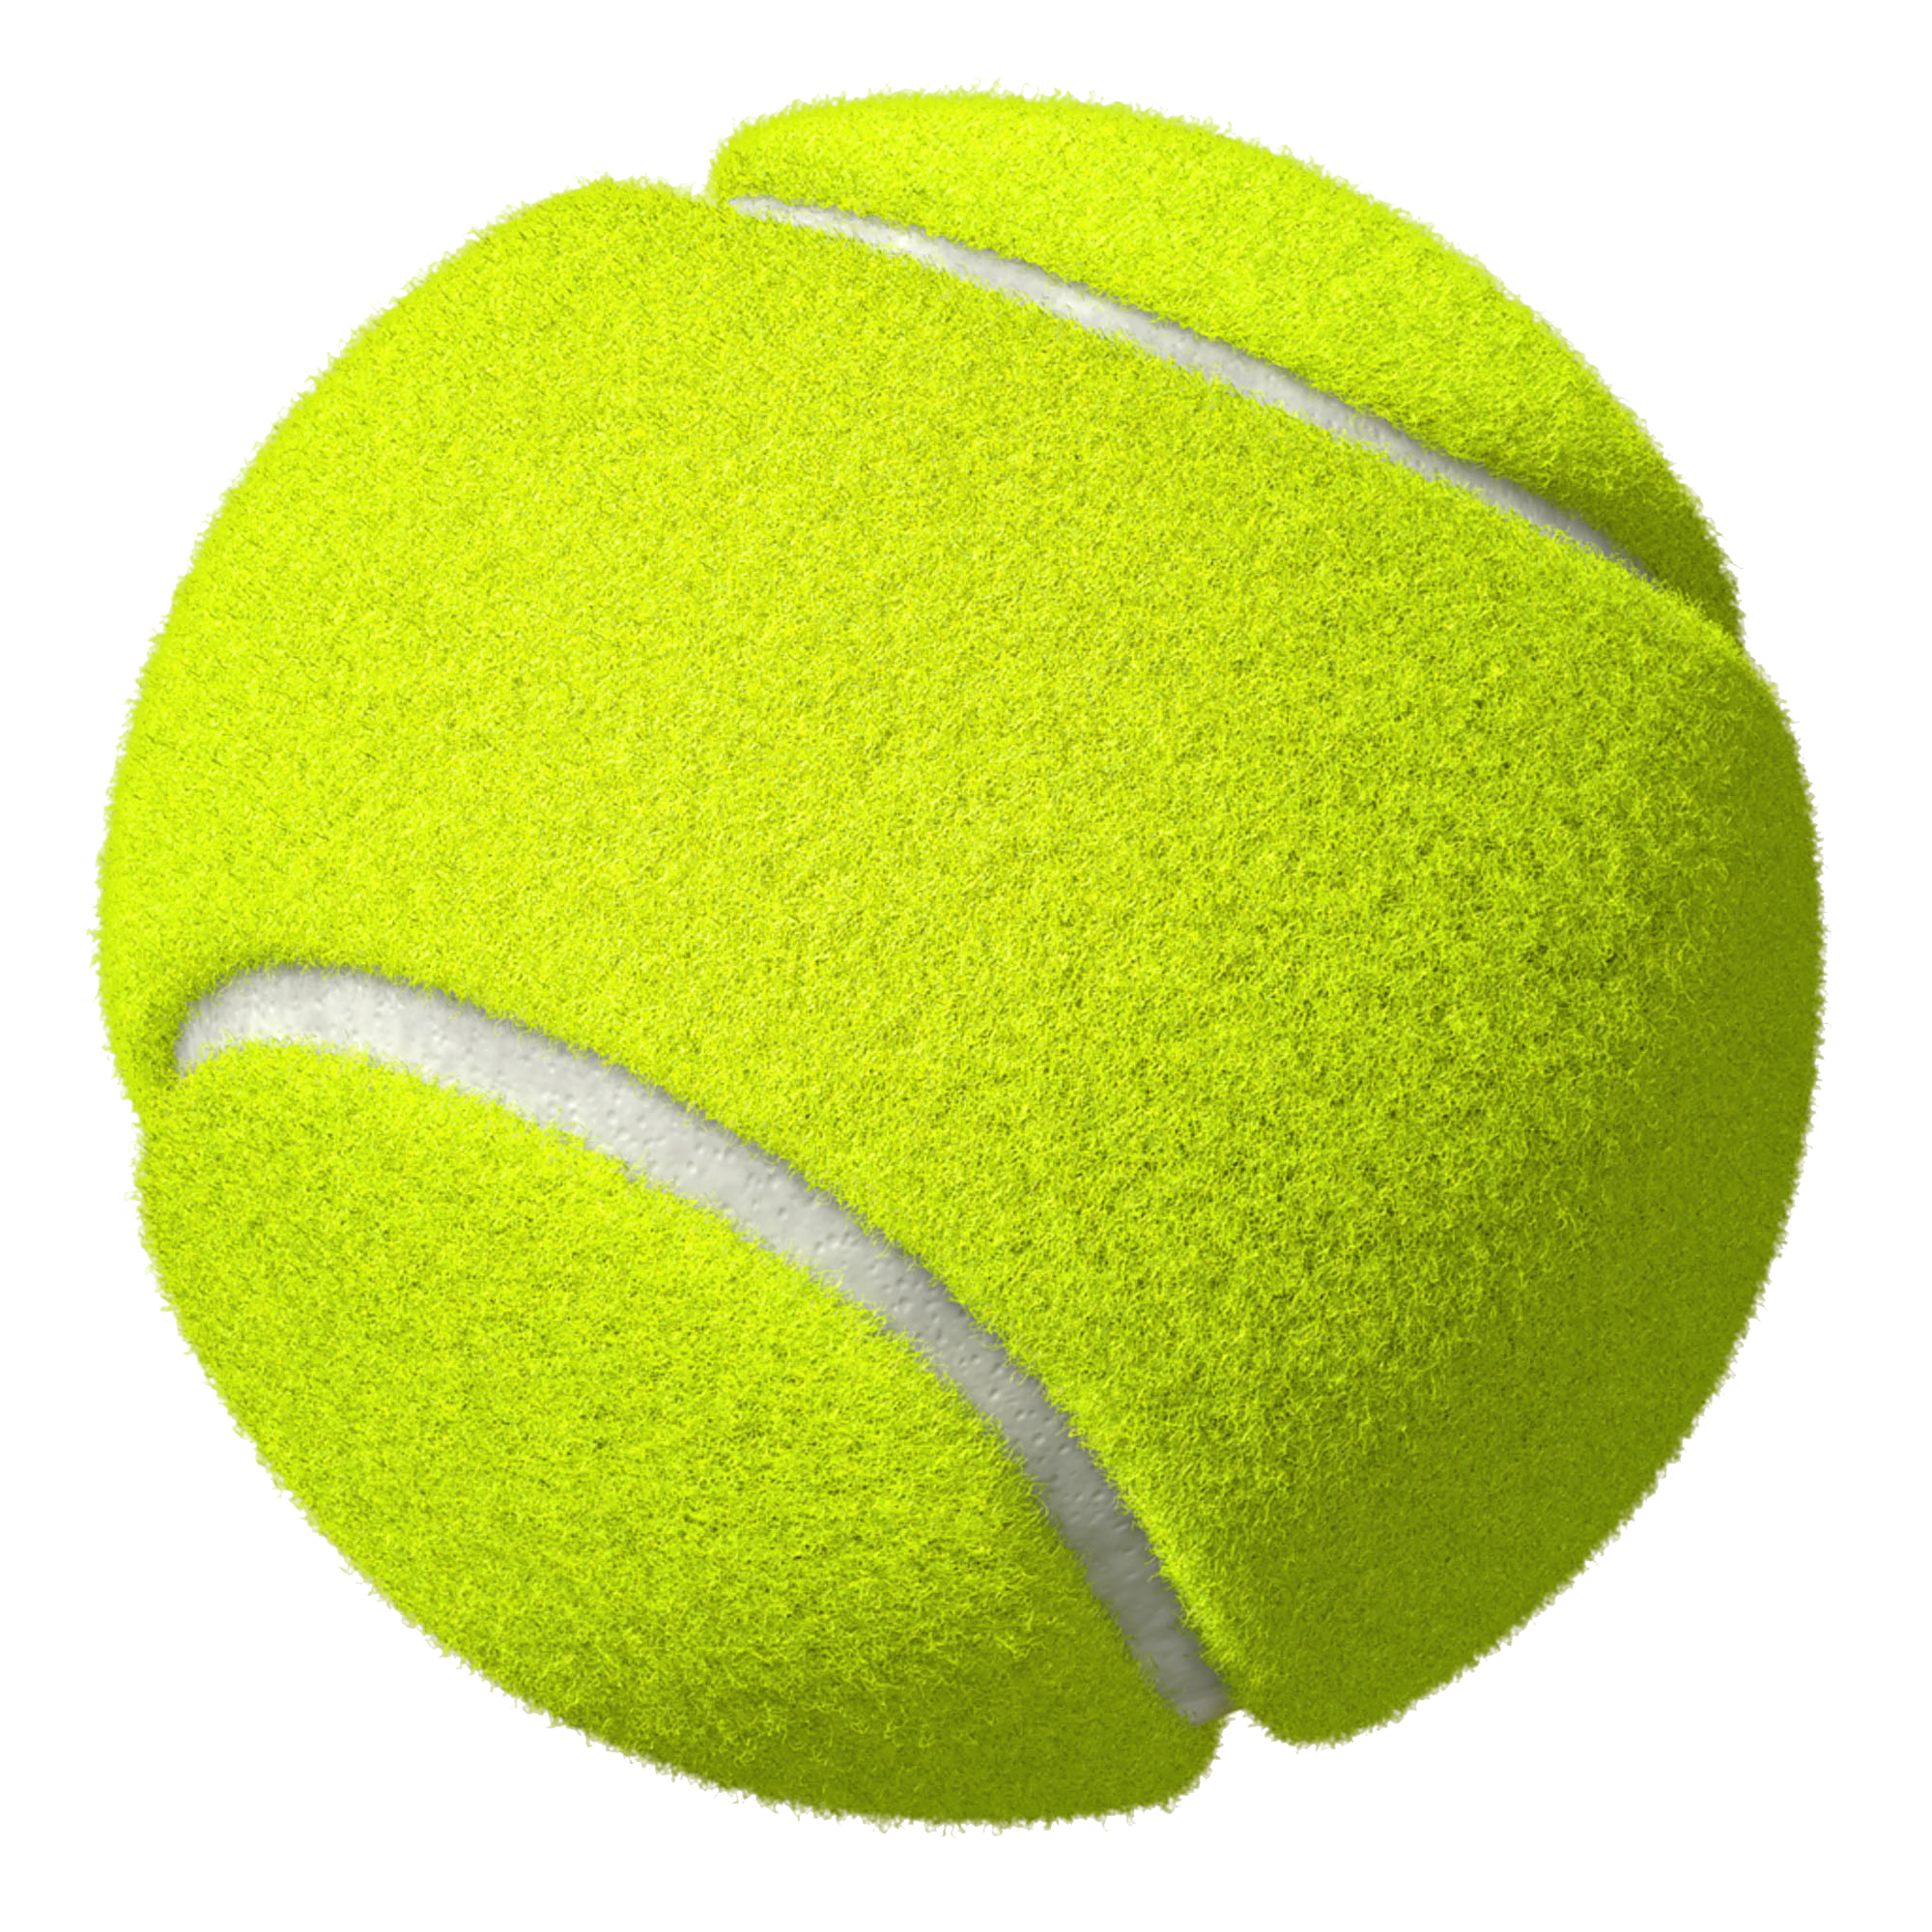 Tennis Ball Png Picture image #43444